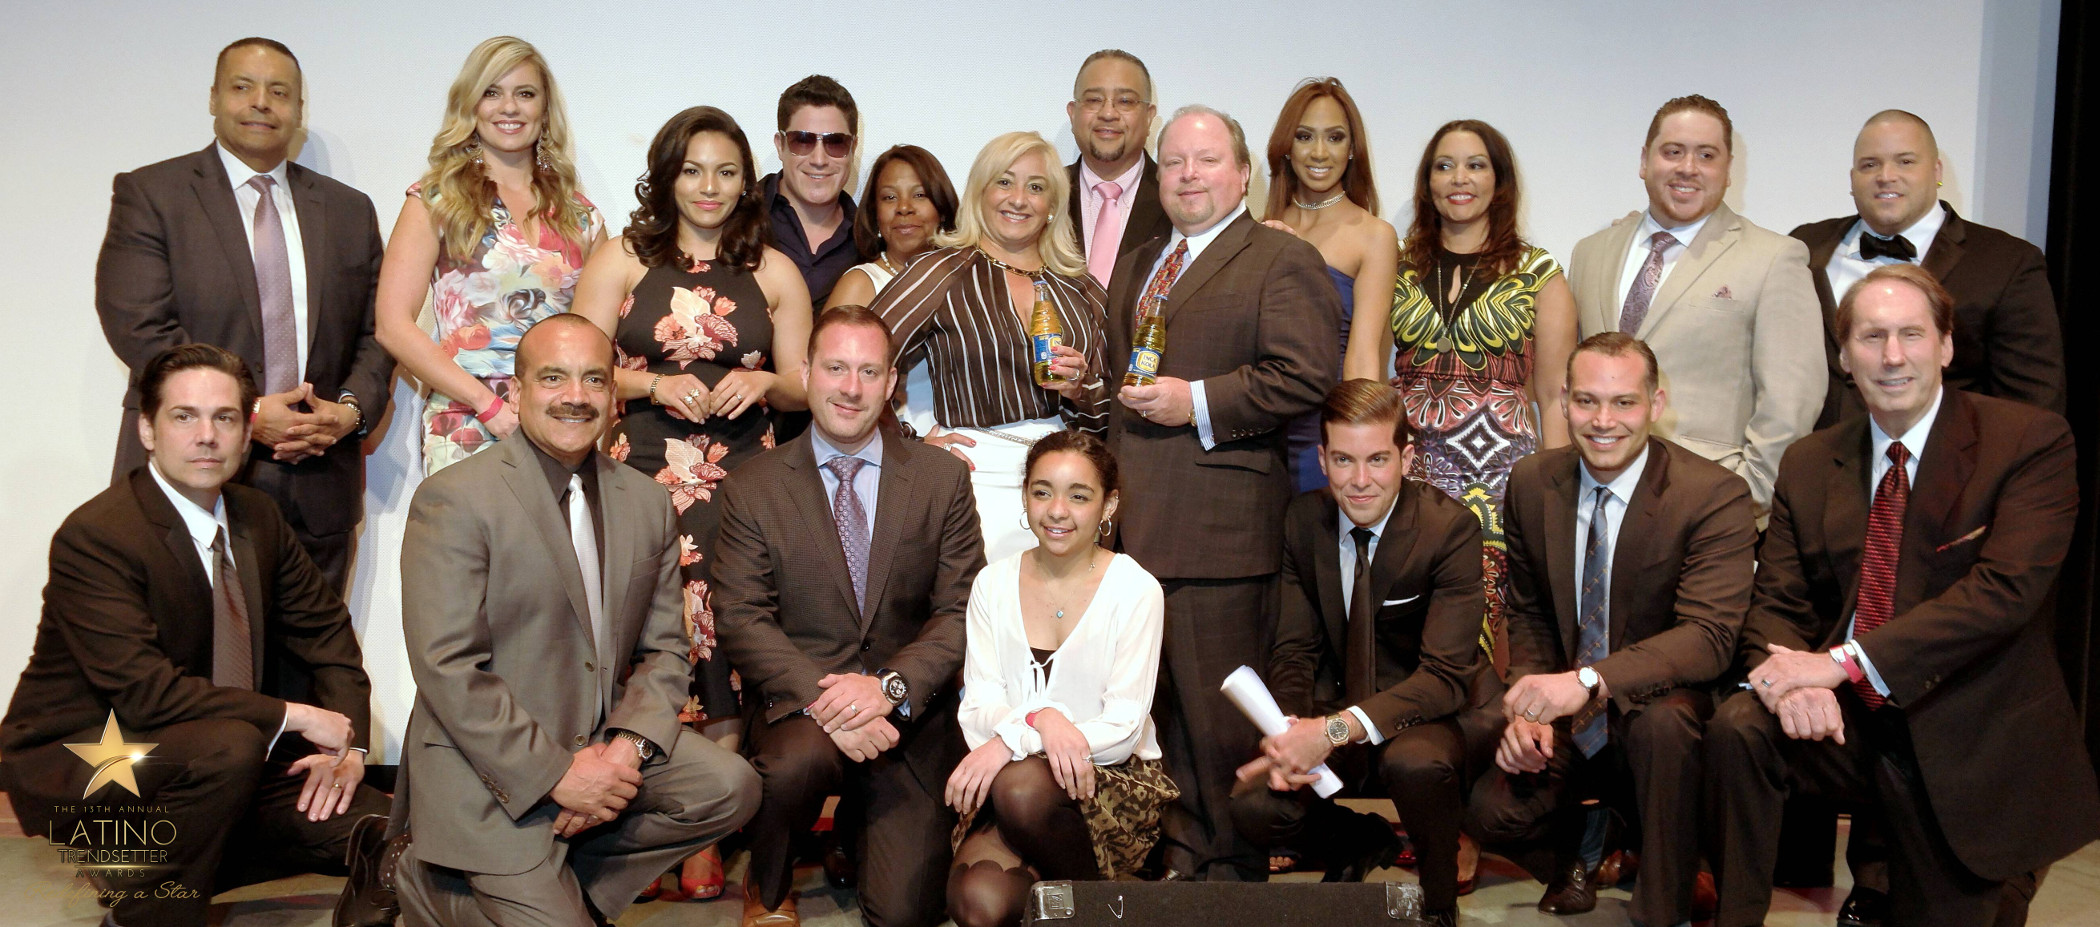 Video Recap of 14th Annual Latino Trendsetter Awards